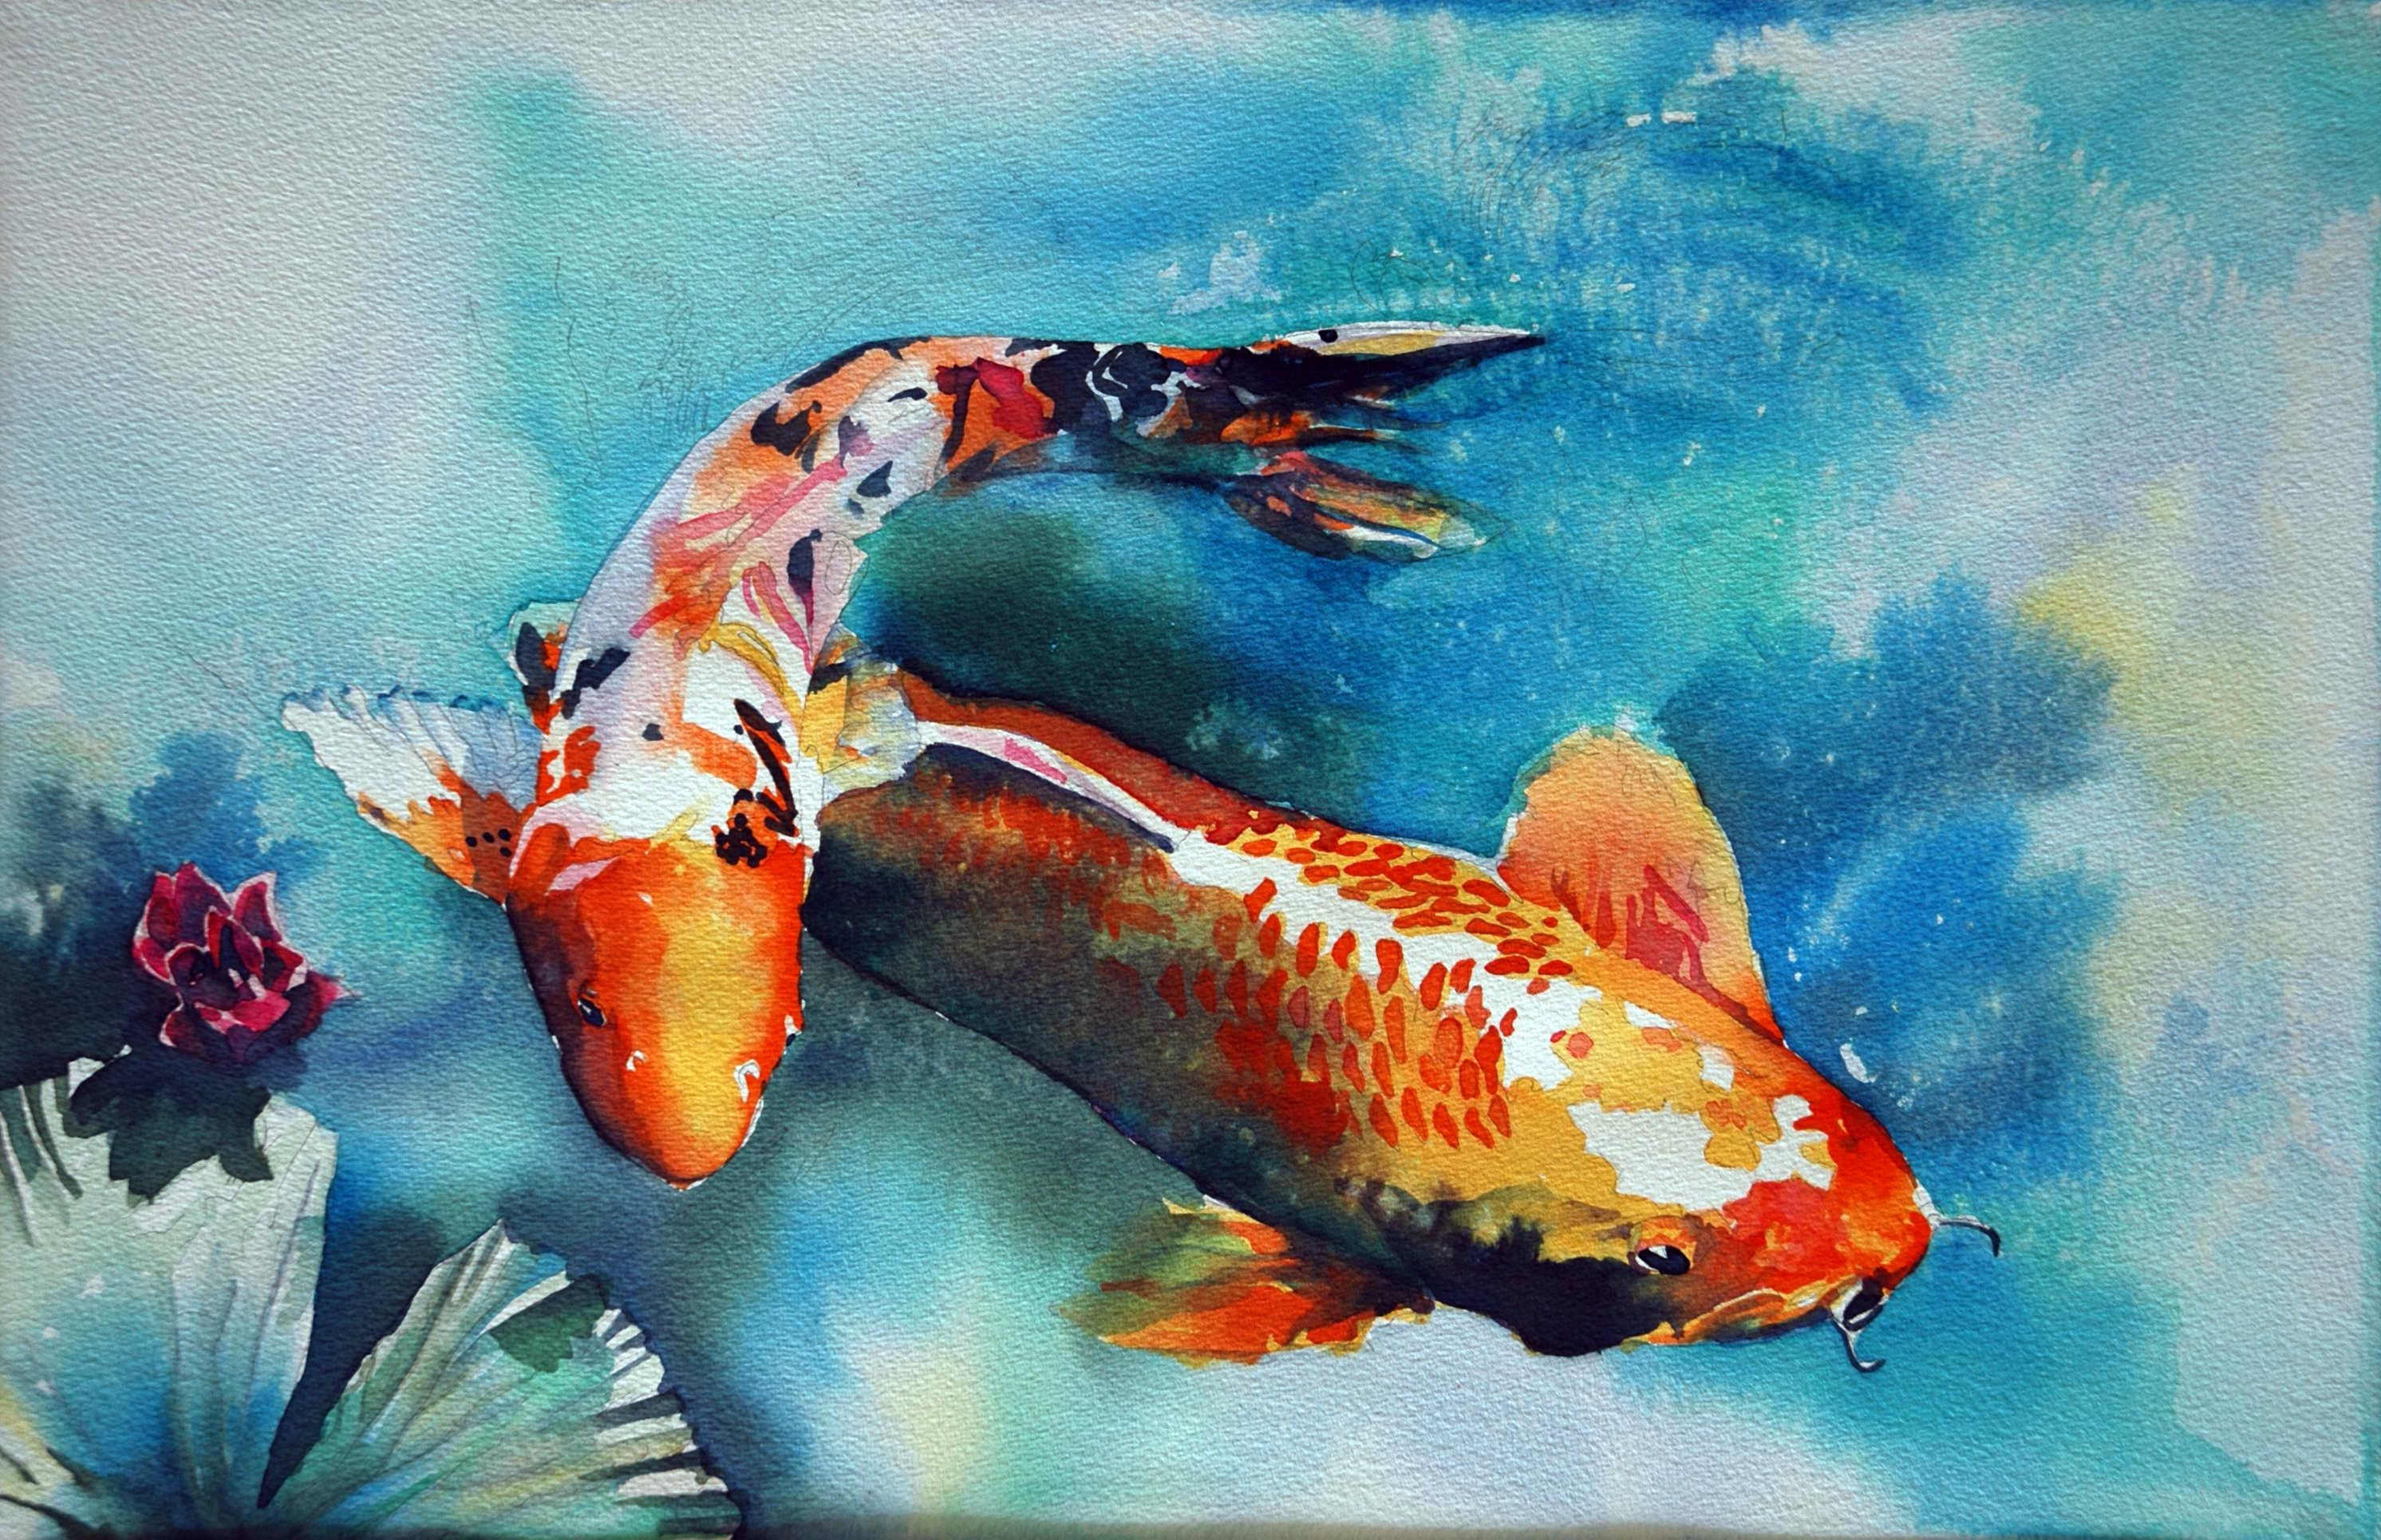 2984x1930 Koi Fish Watercolor Painting Speed Painting